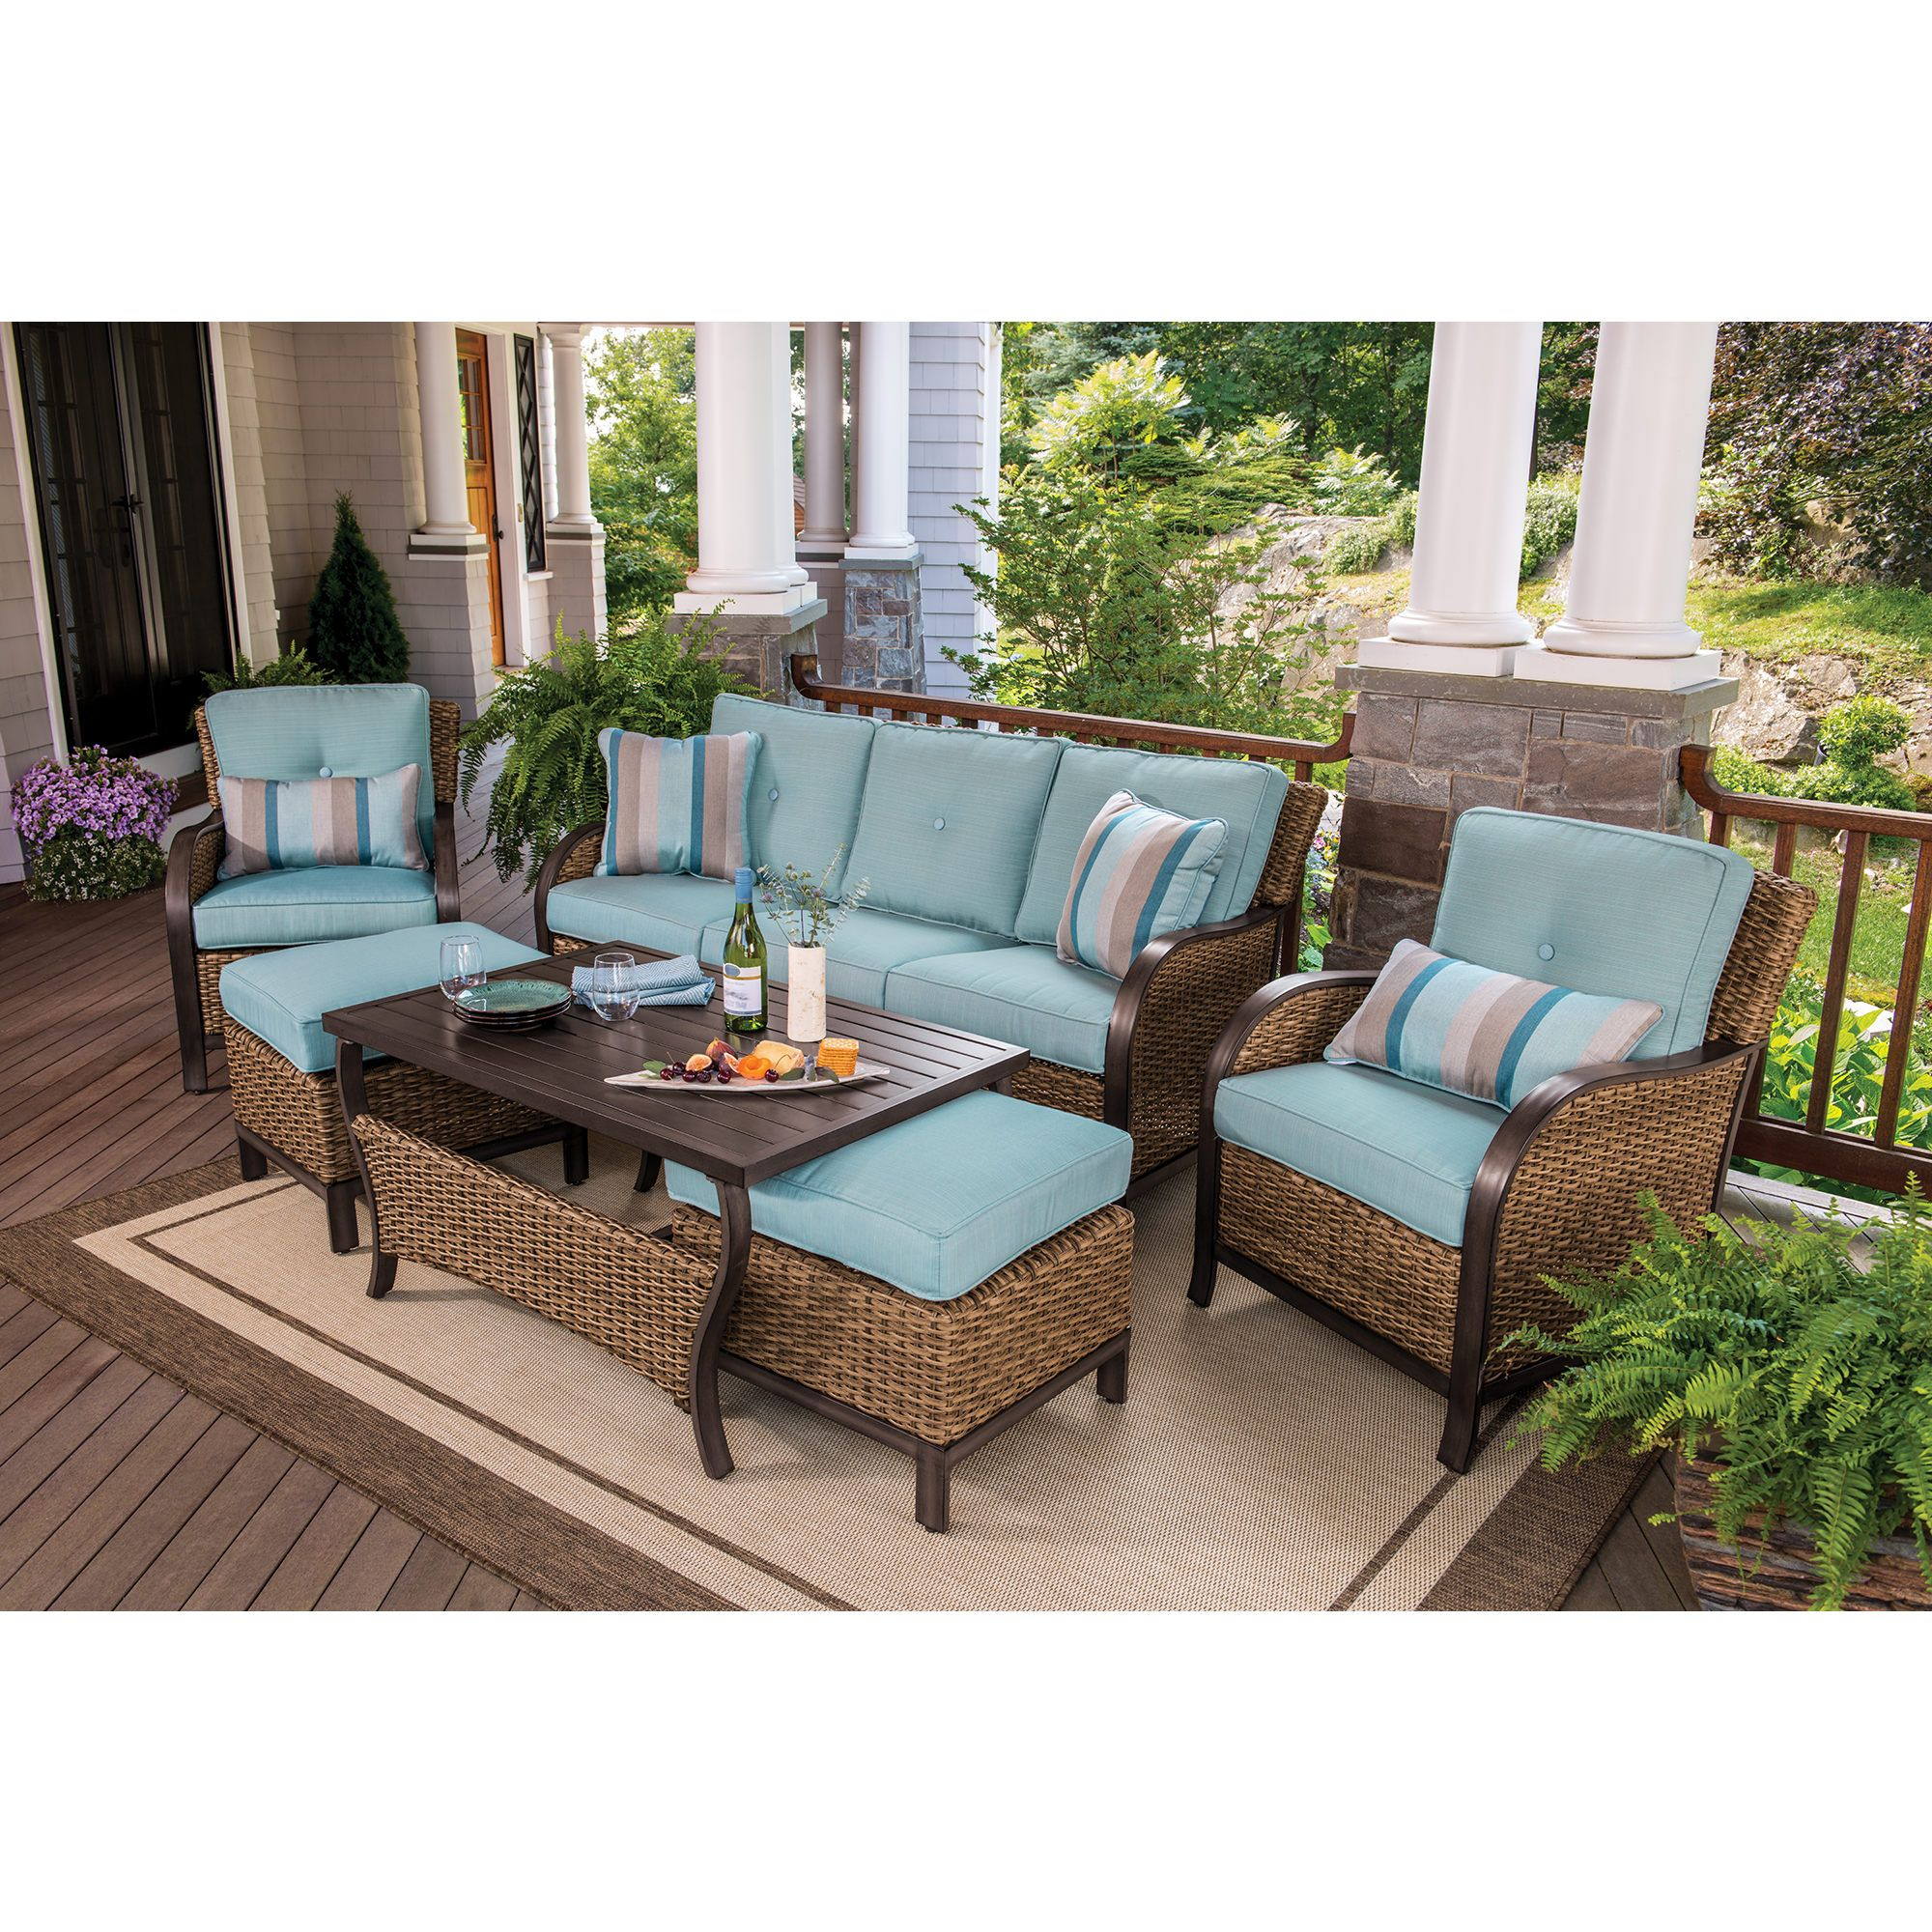 Berkley Jensen Nantucket 6-Piece Wicker Patio Set - BJs Wholesale ...